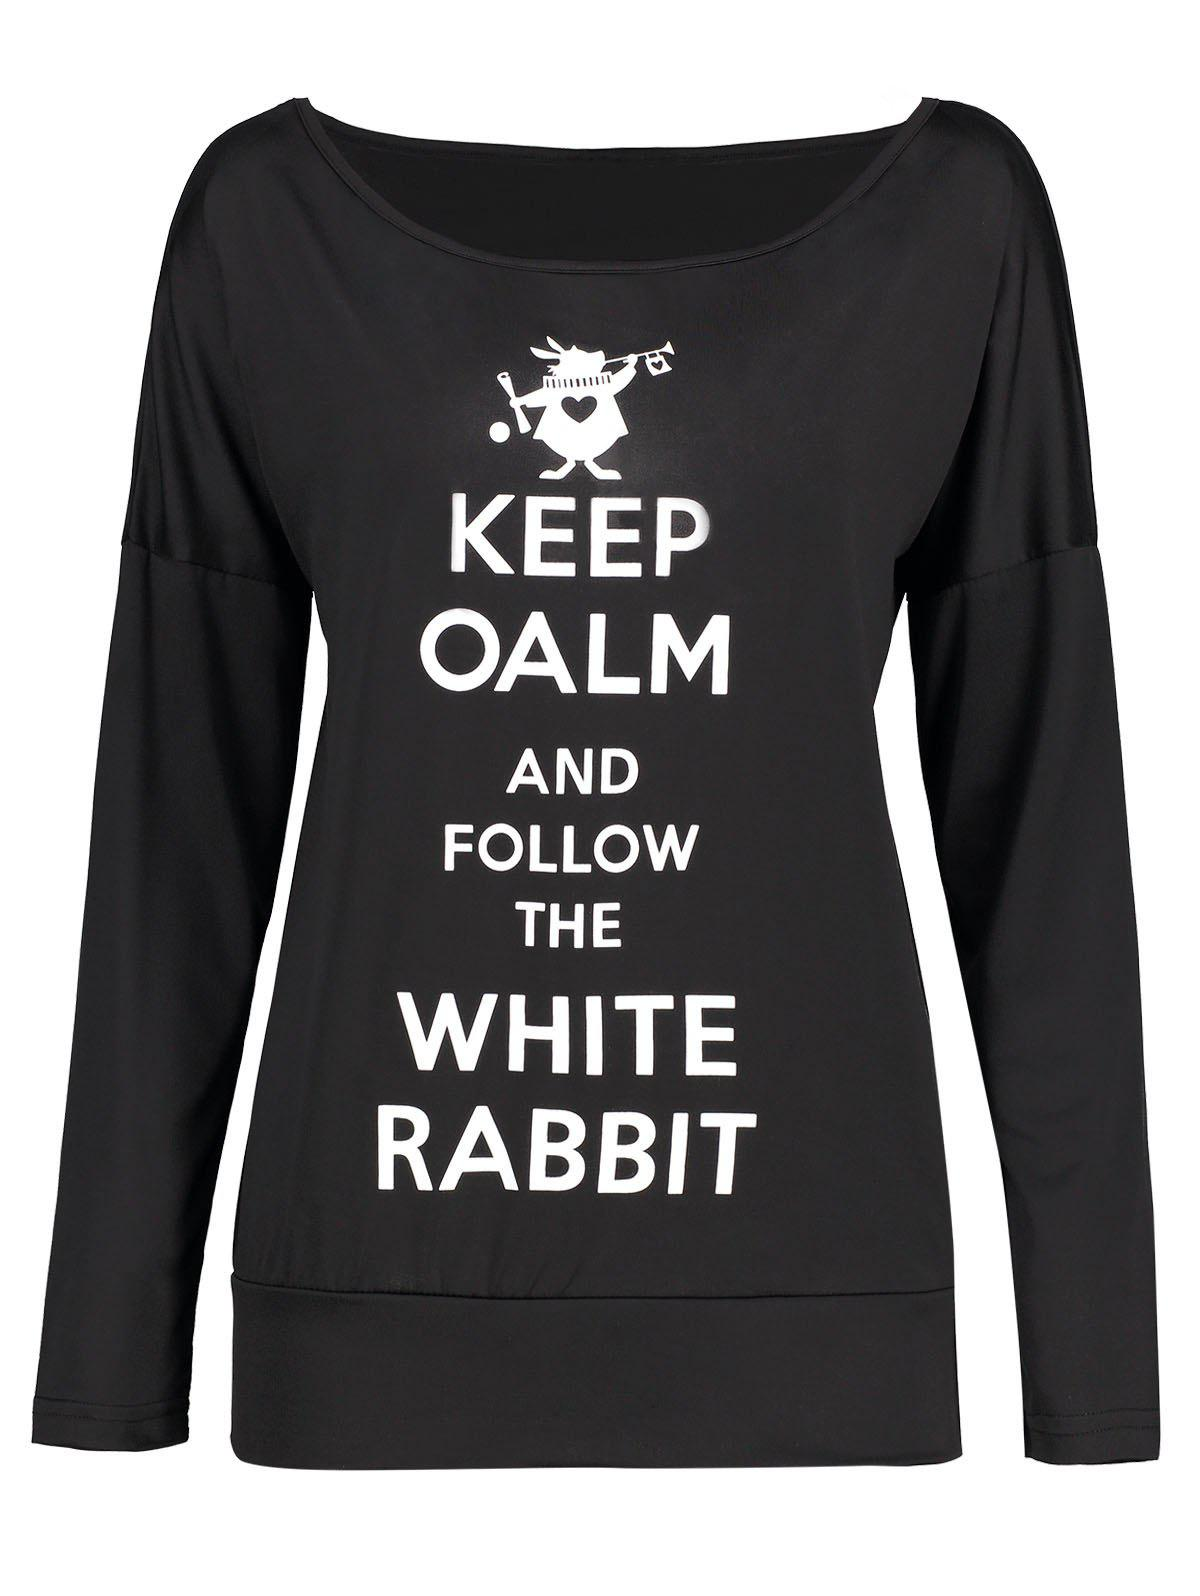 Keep Oalm Print Drop Shoulder Long Sleeve T-shirtWOMEN<br><br>Size: S; Color: BLACK; Material: Polyester; Shirt Length: Regular; Sleeve Length: Full; Collar: Round Neck; Style: Casual; Pattern Type: Letter,Print; Season: Fall,Spring,Winter; Weight: 0.2200kg; Package Contents: 1 x T-shirt;